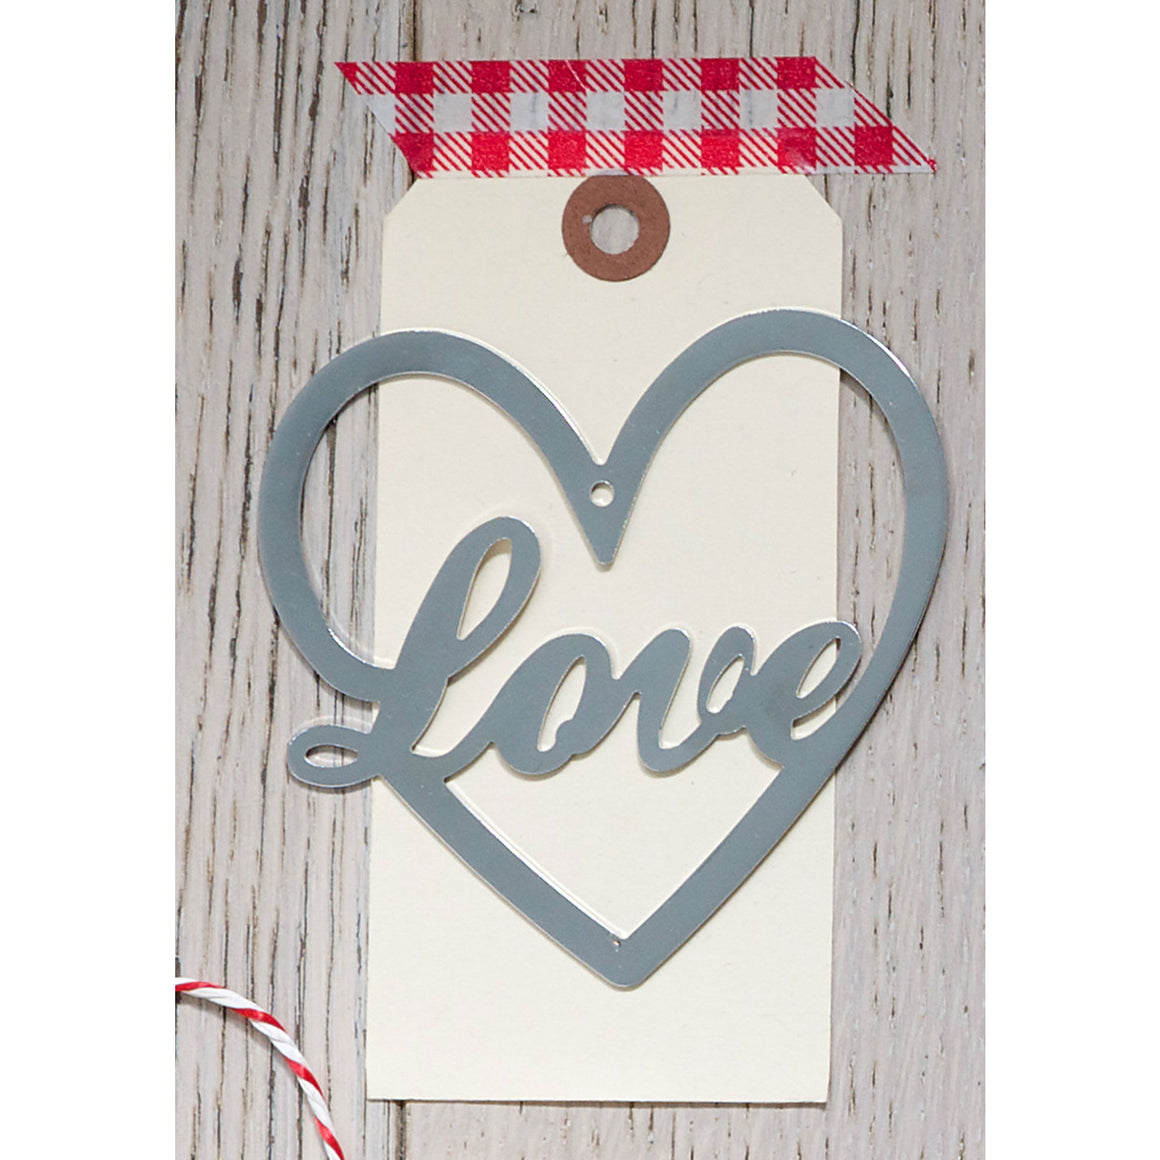 'Love' Heart Decoration - The Love Trees